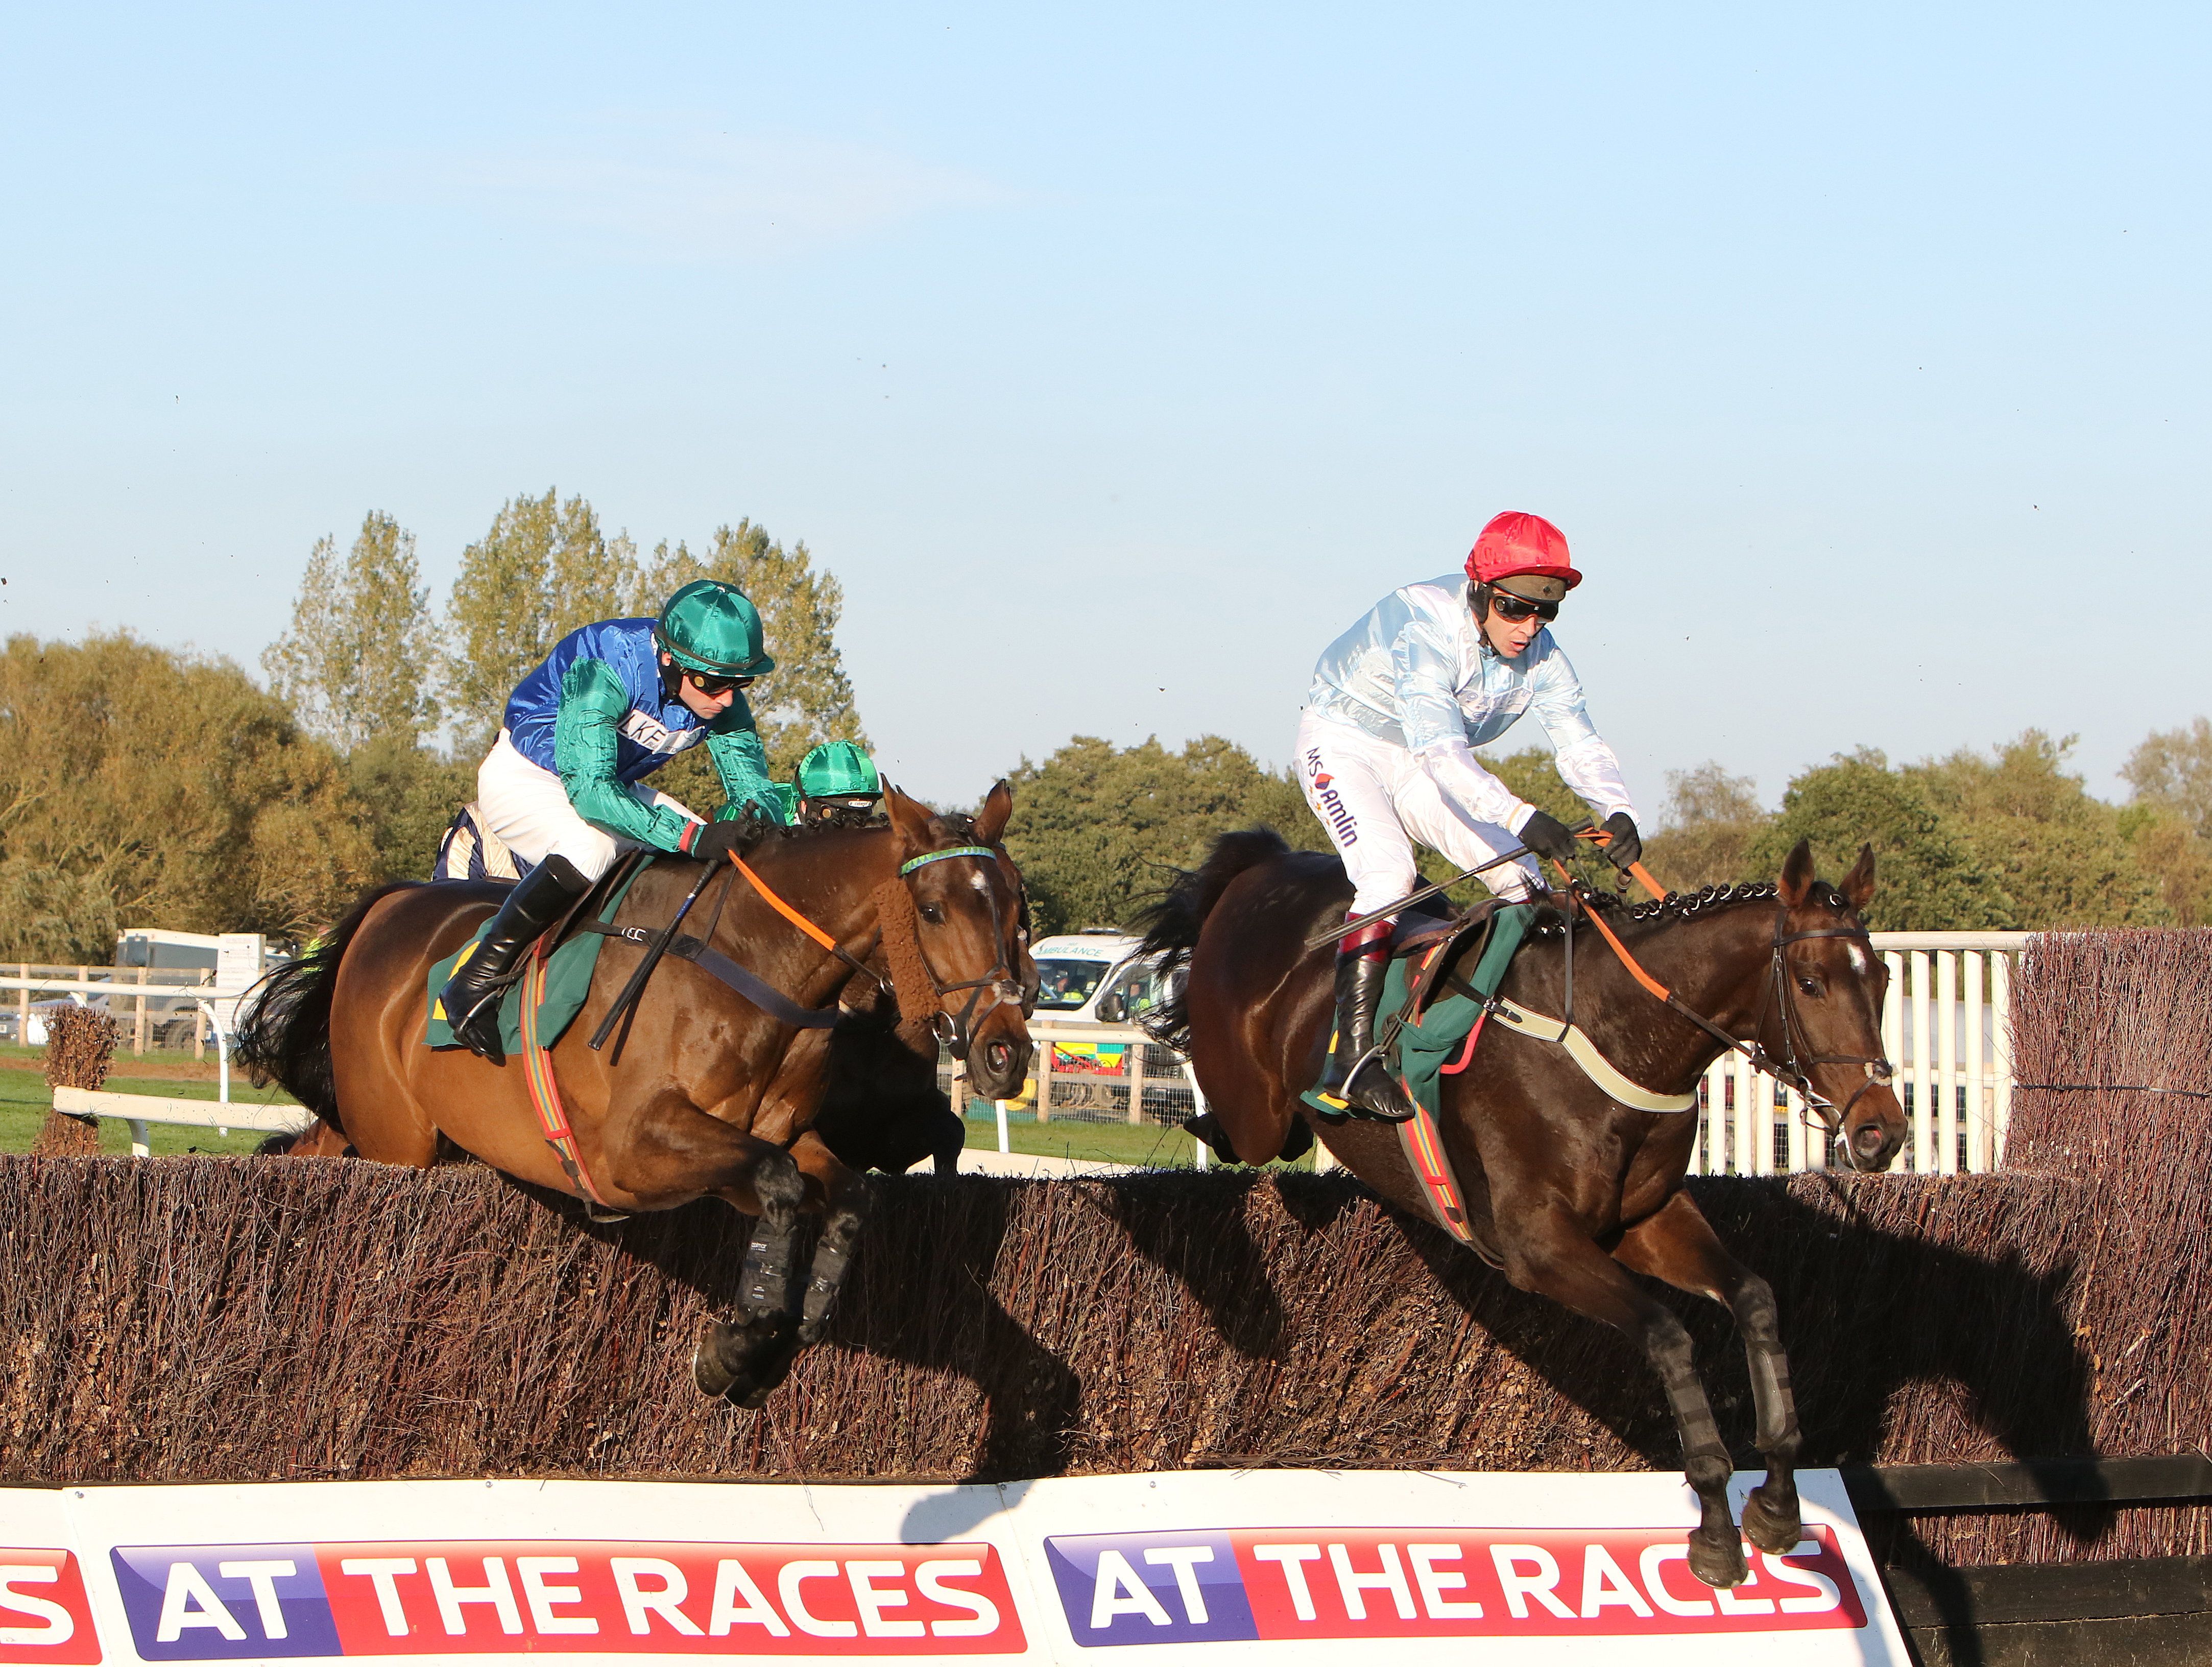 At The Races | POST RACING REPORT